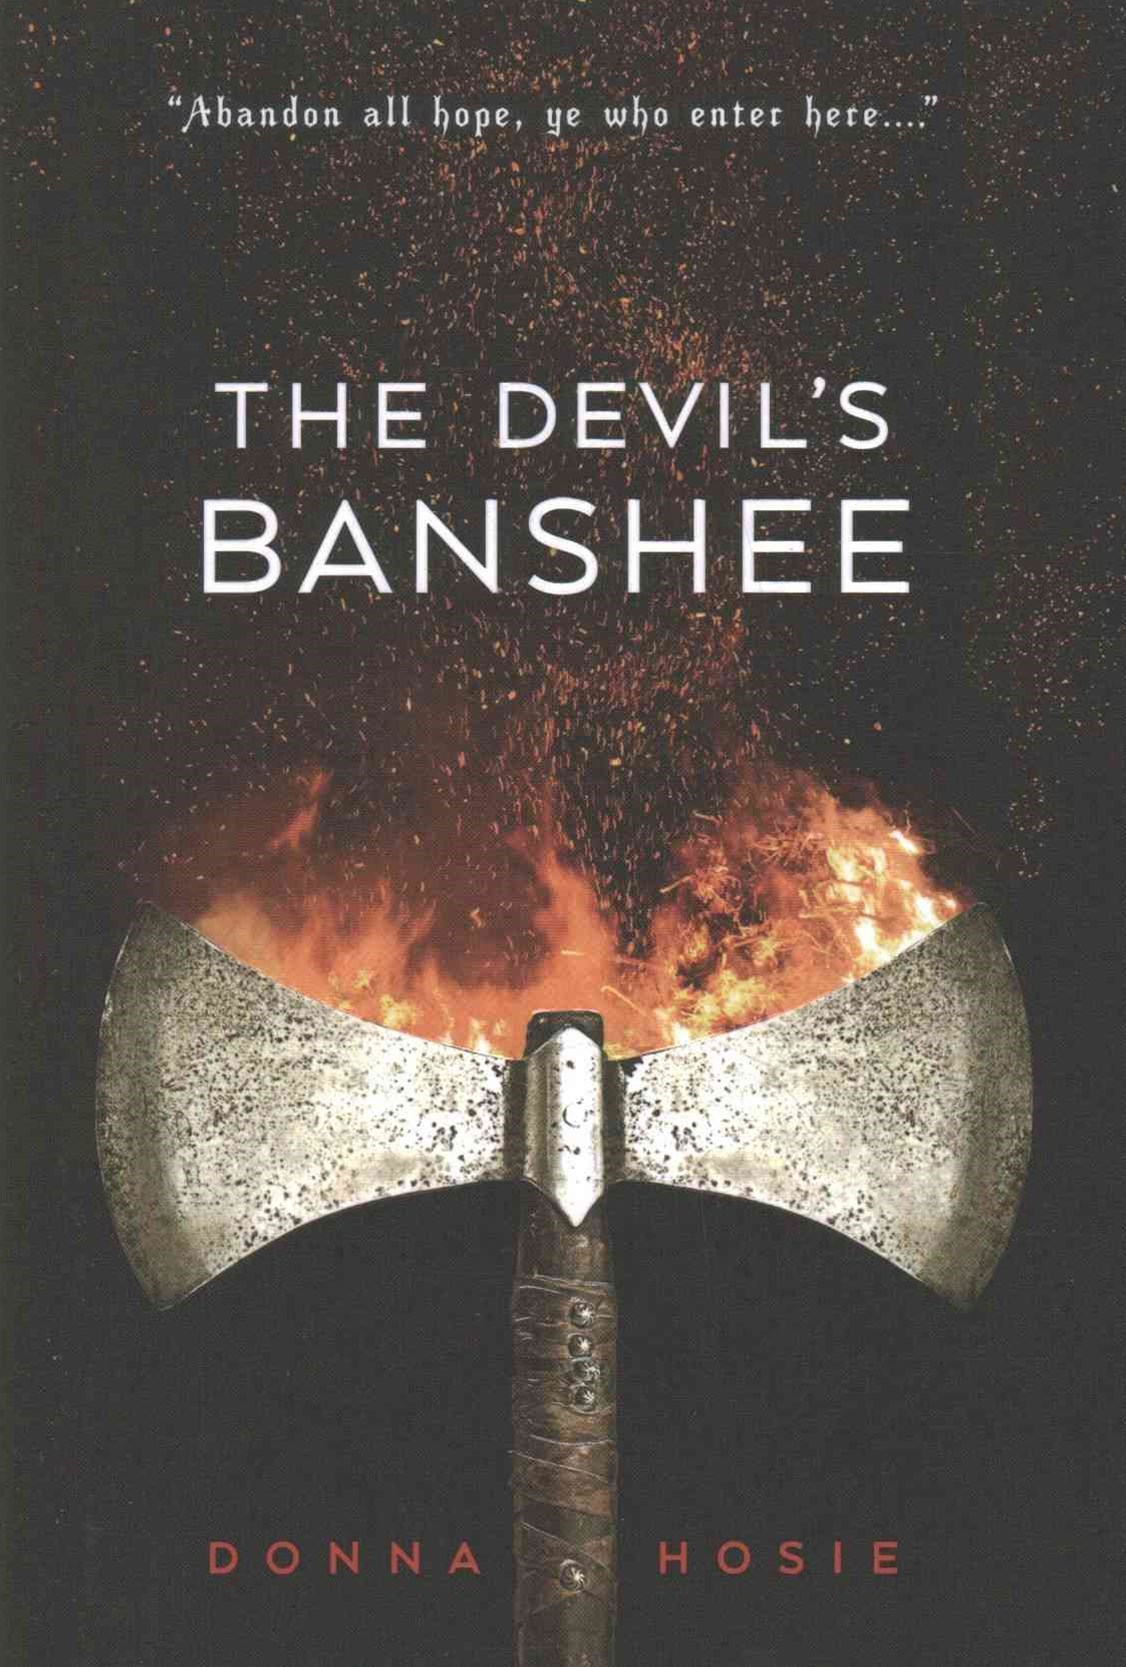 The Devil's Banshee